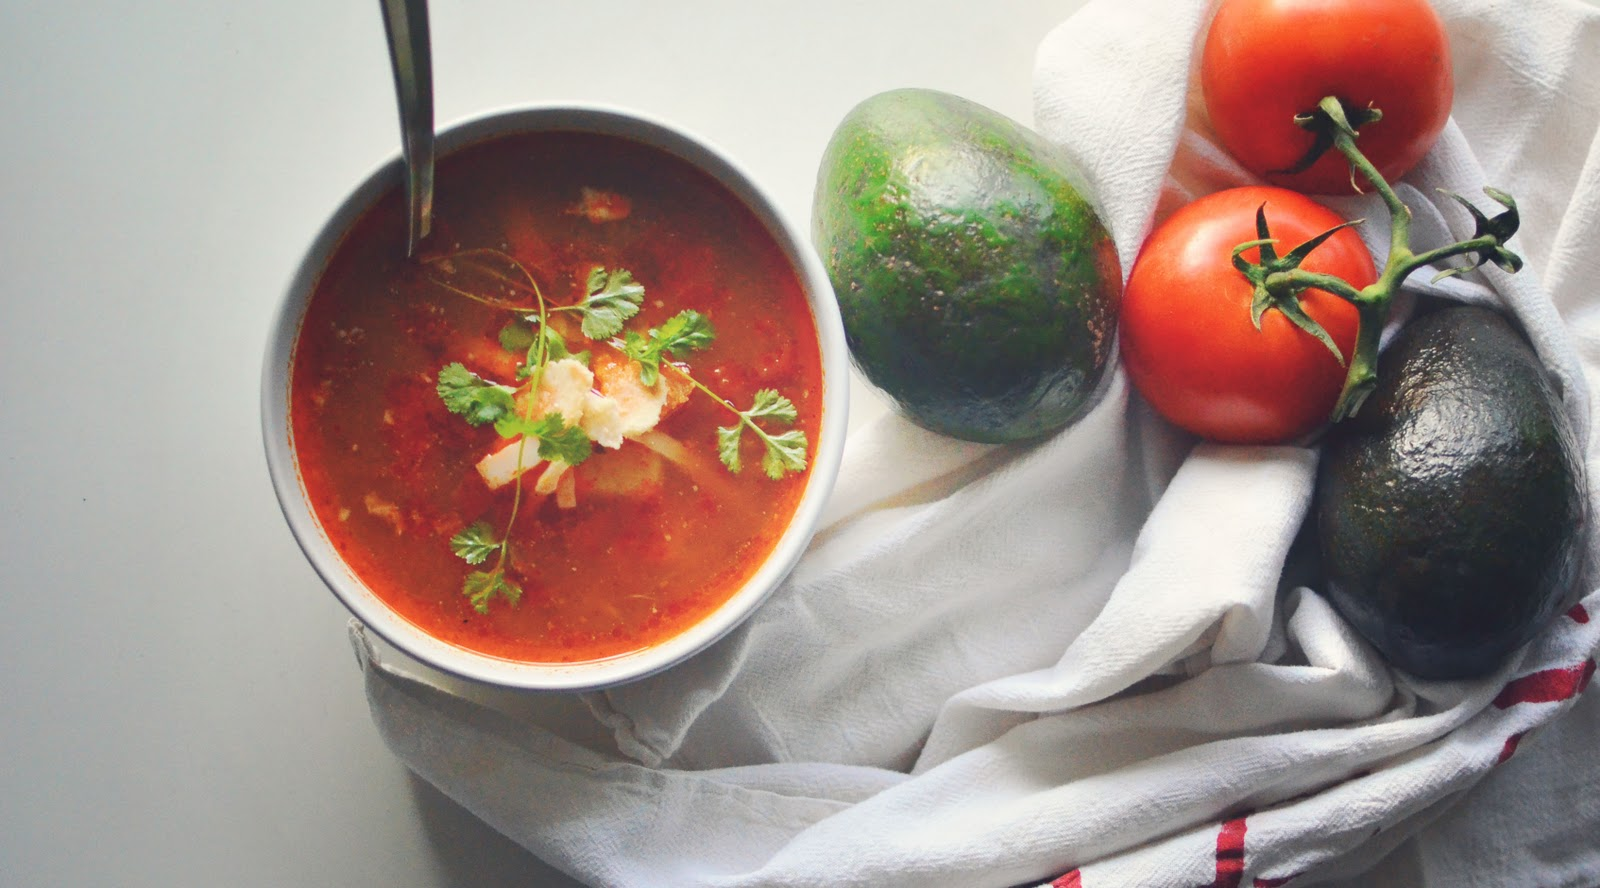 Chili Lime Avocado Soup